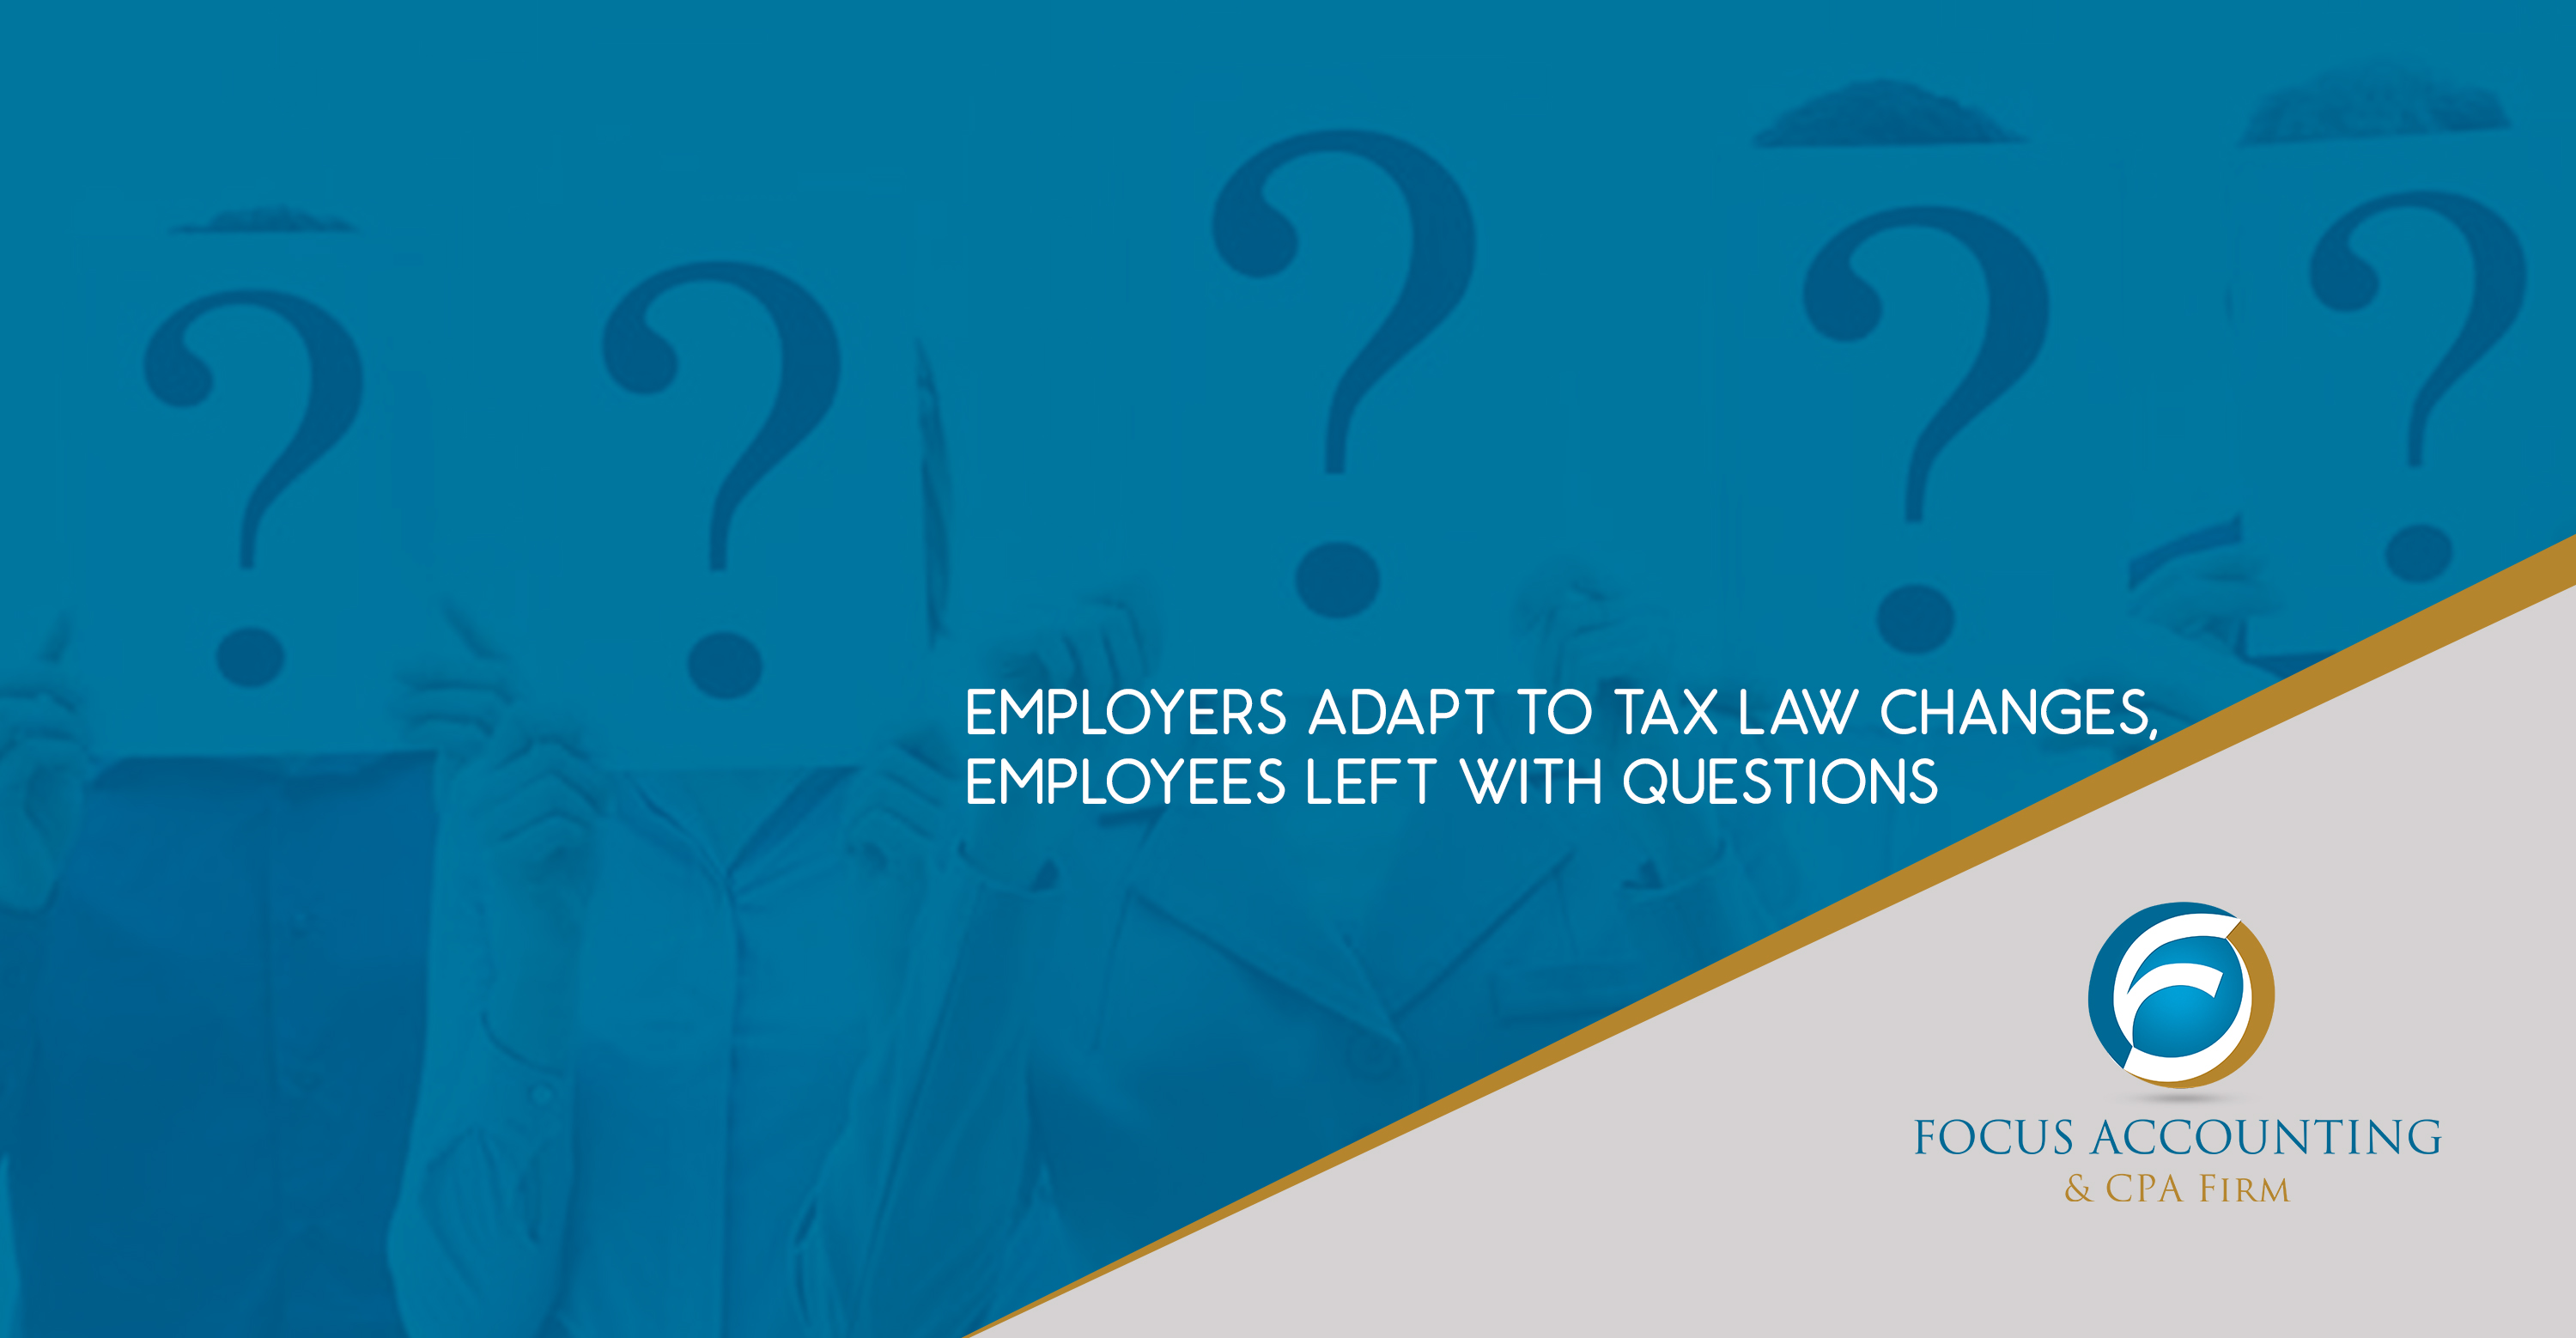 Employers adapt to tax law changes, employees left with questions